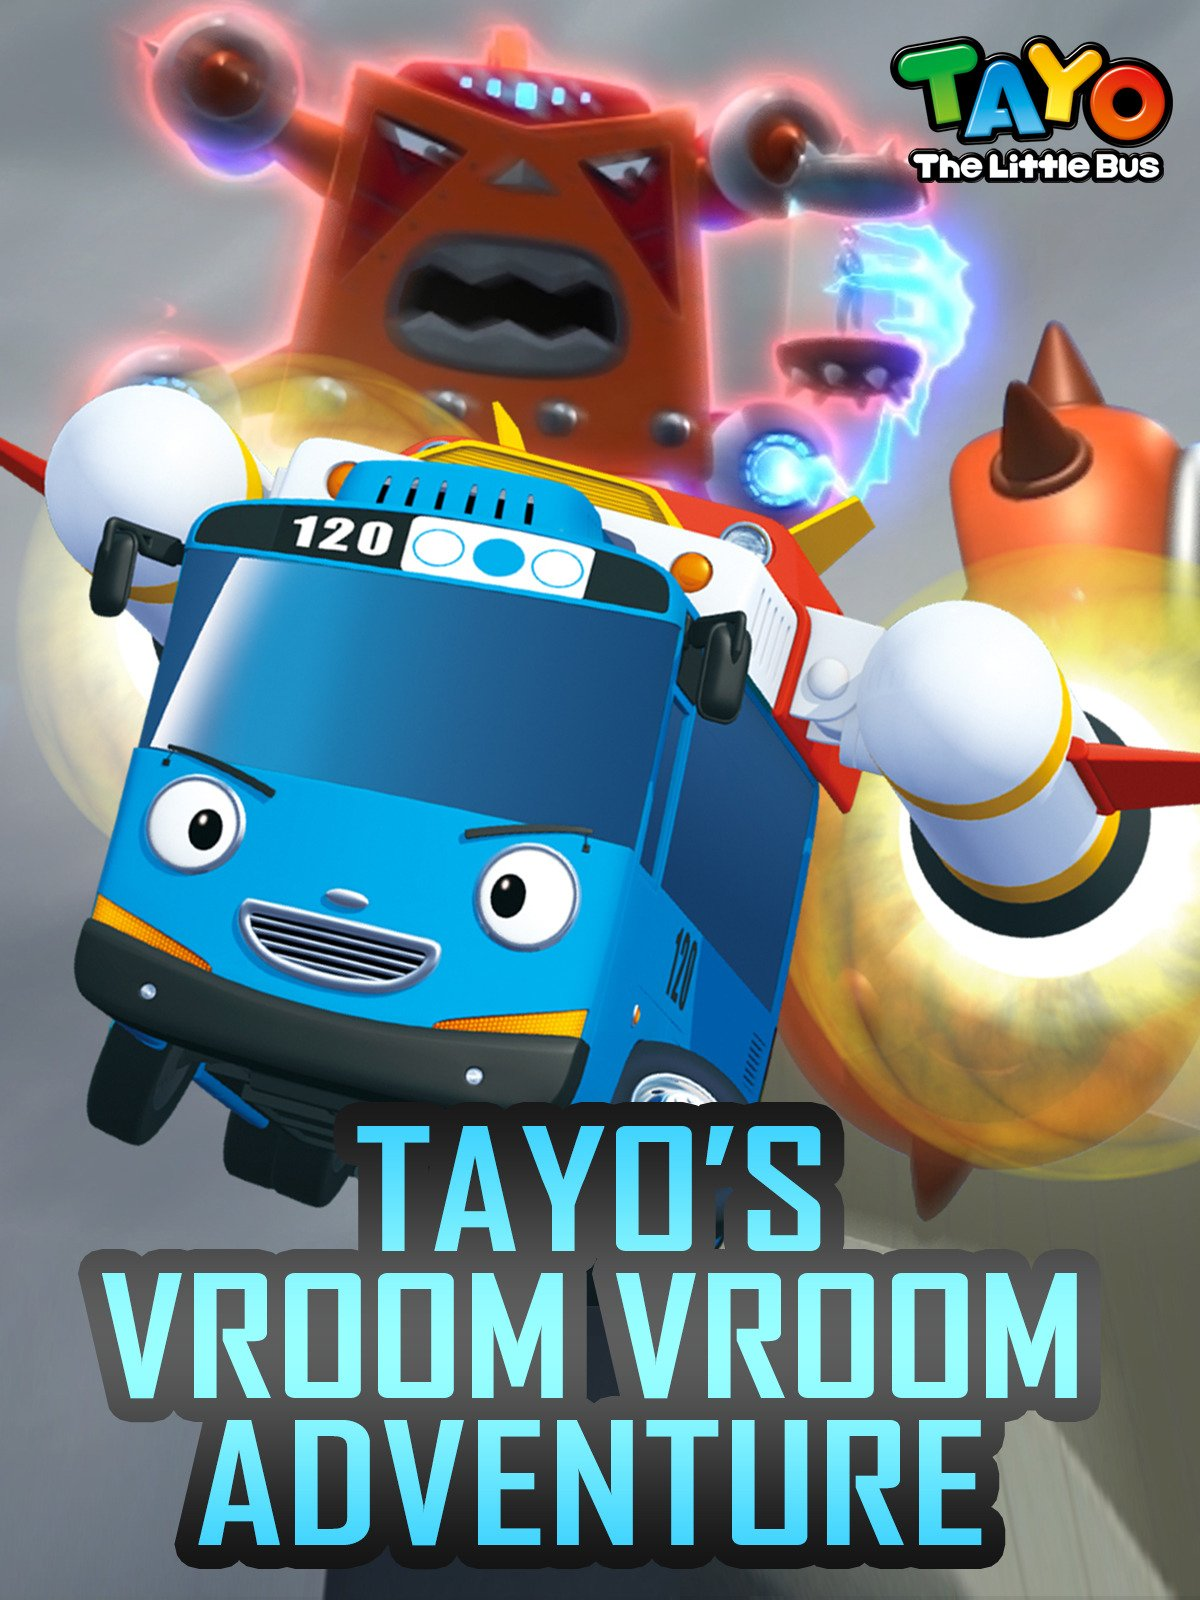 Tayo the Little Bus - Tayo's Vroom Vroom Adventure